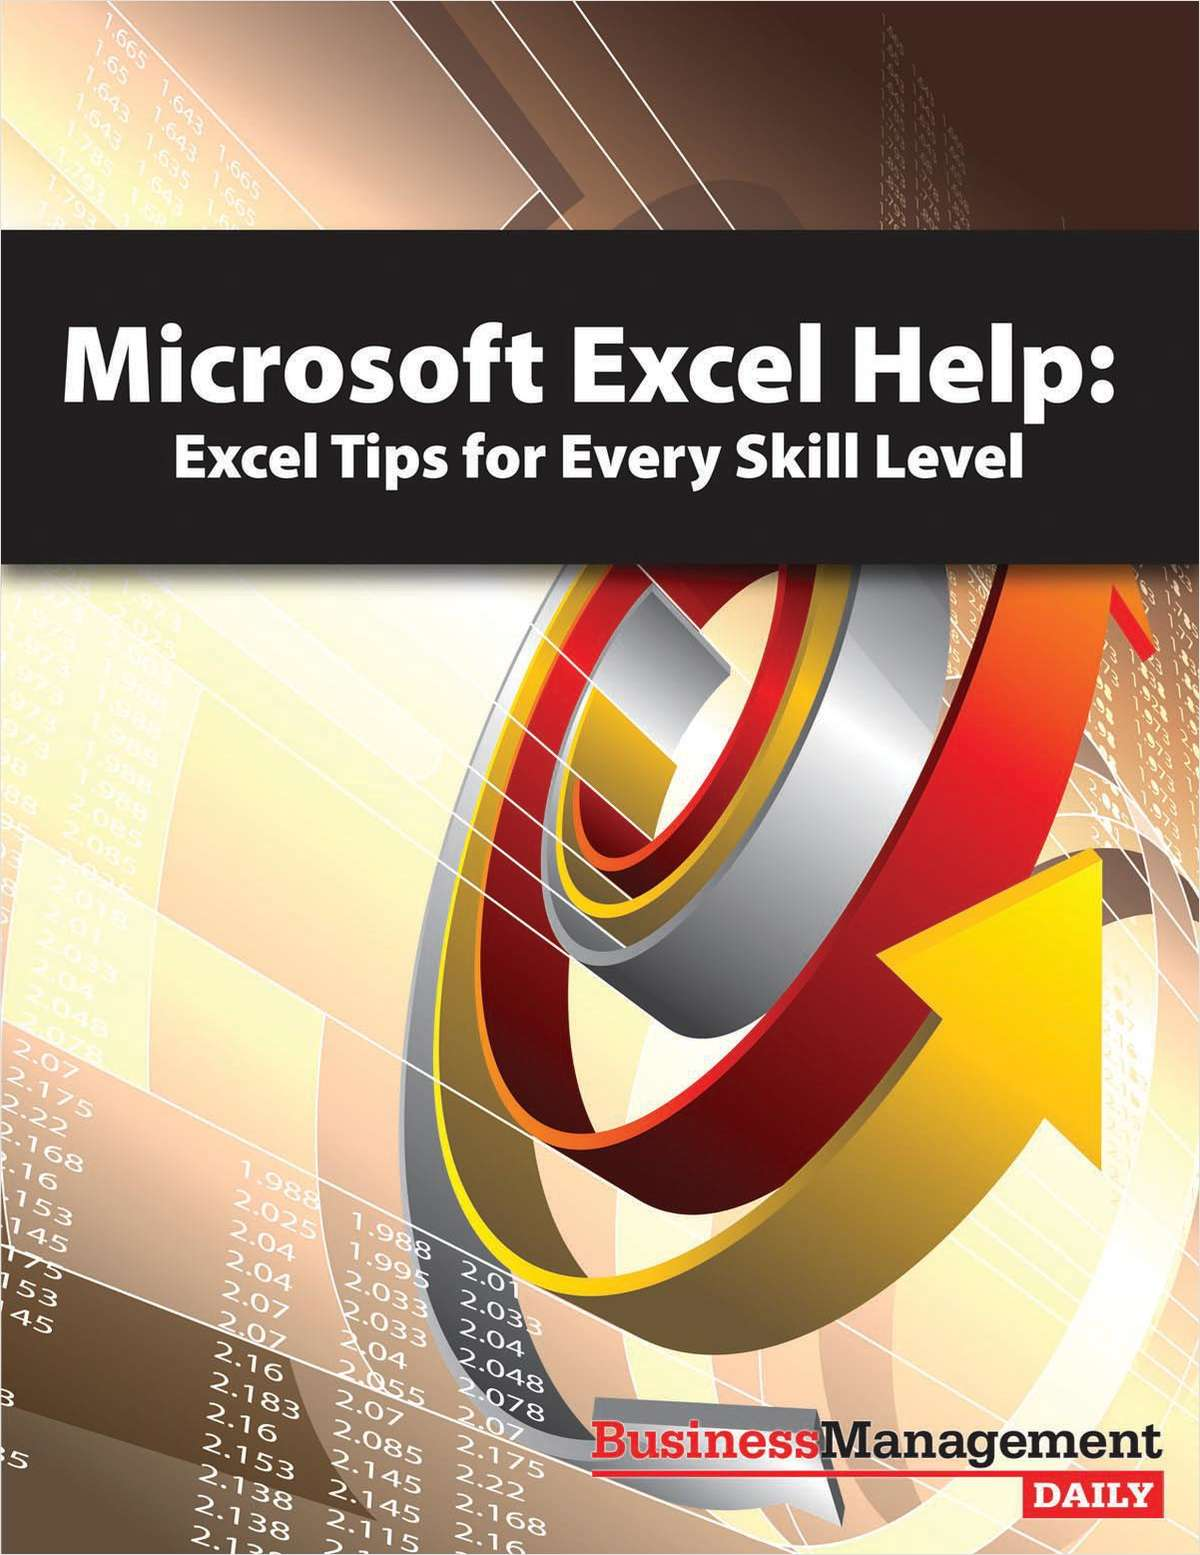 Microsoft Excel Help: Excel Tips for Every Skill Level